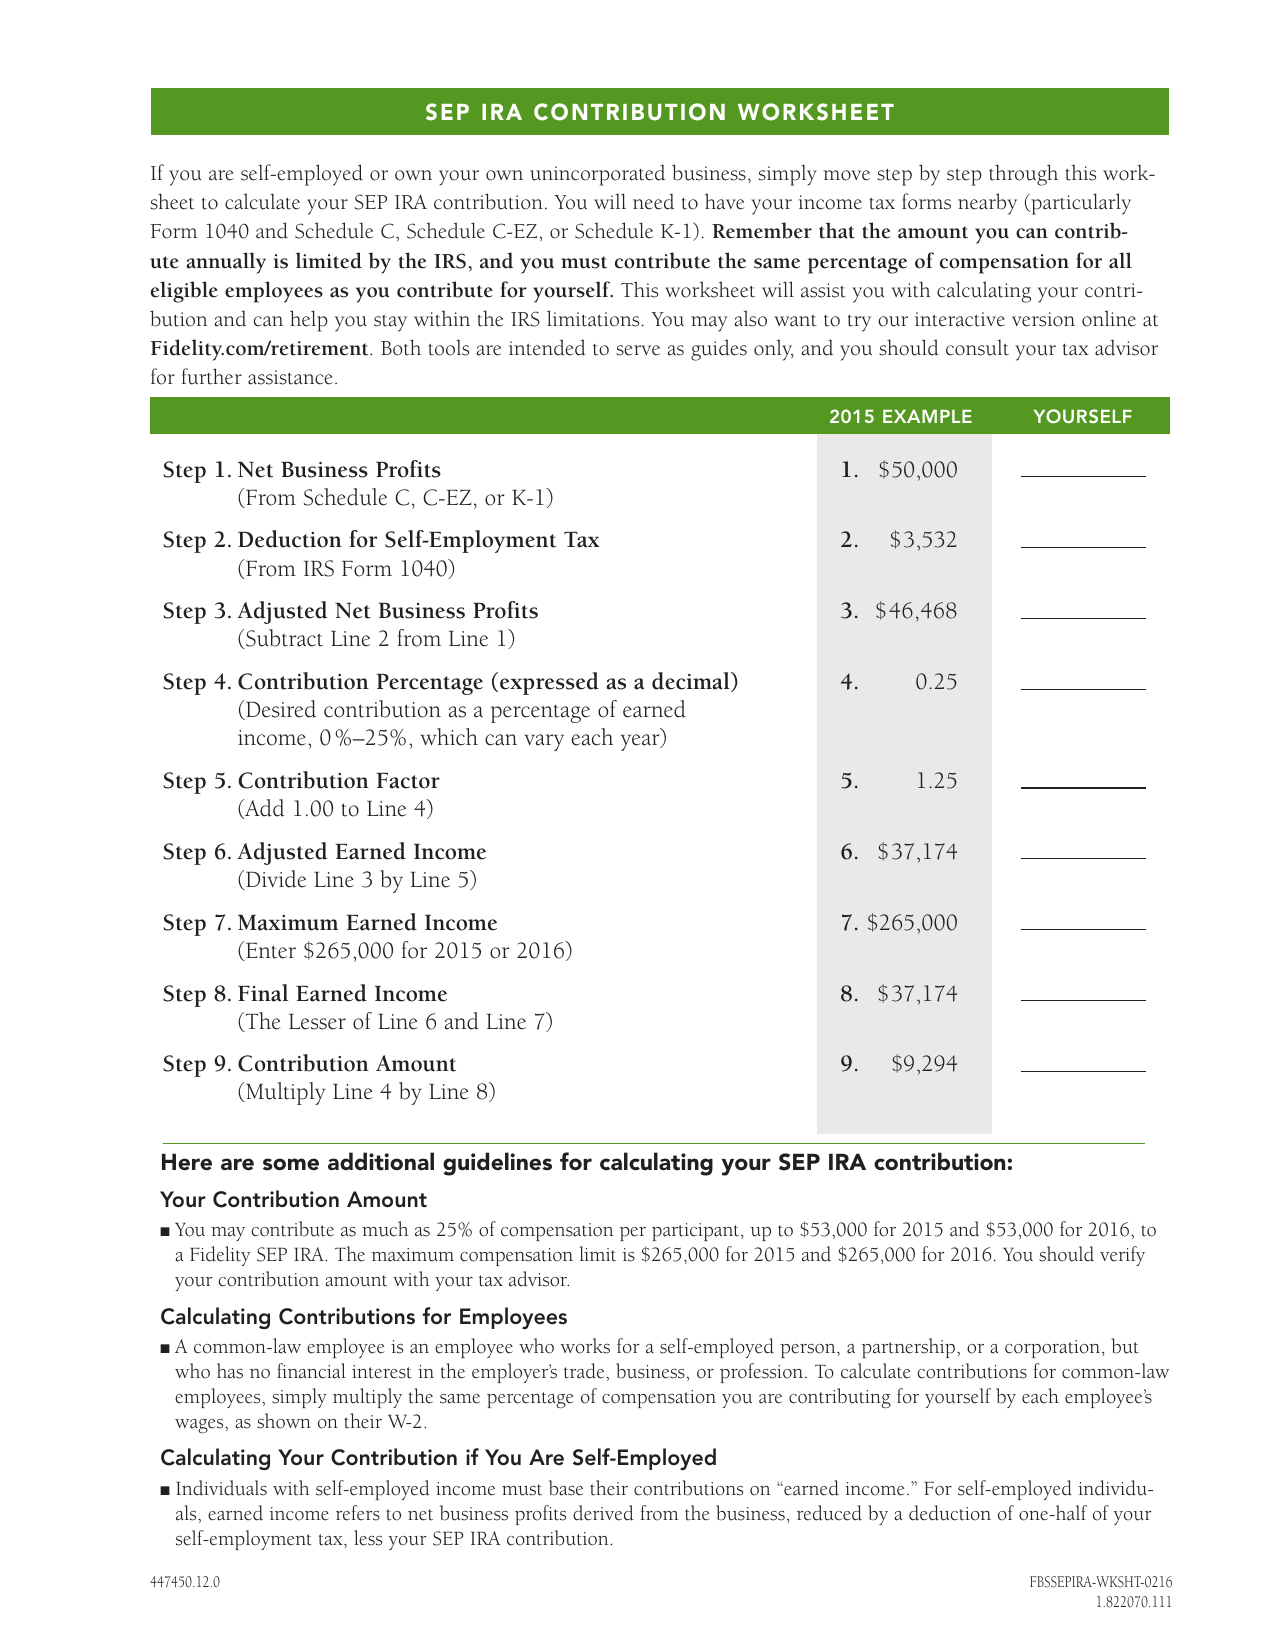 Sep Ira Contribution Worksheet